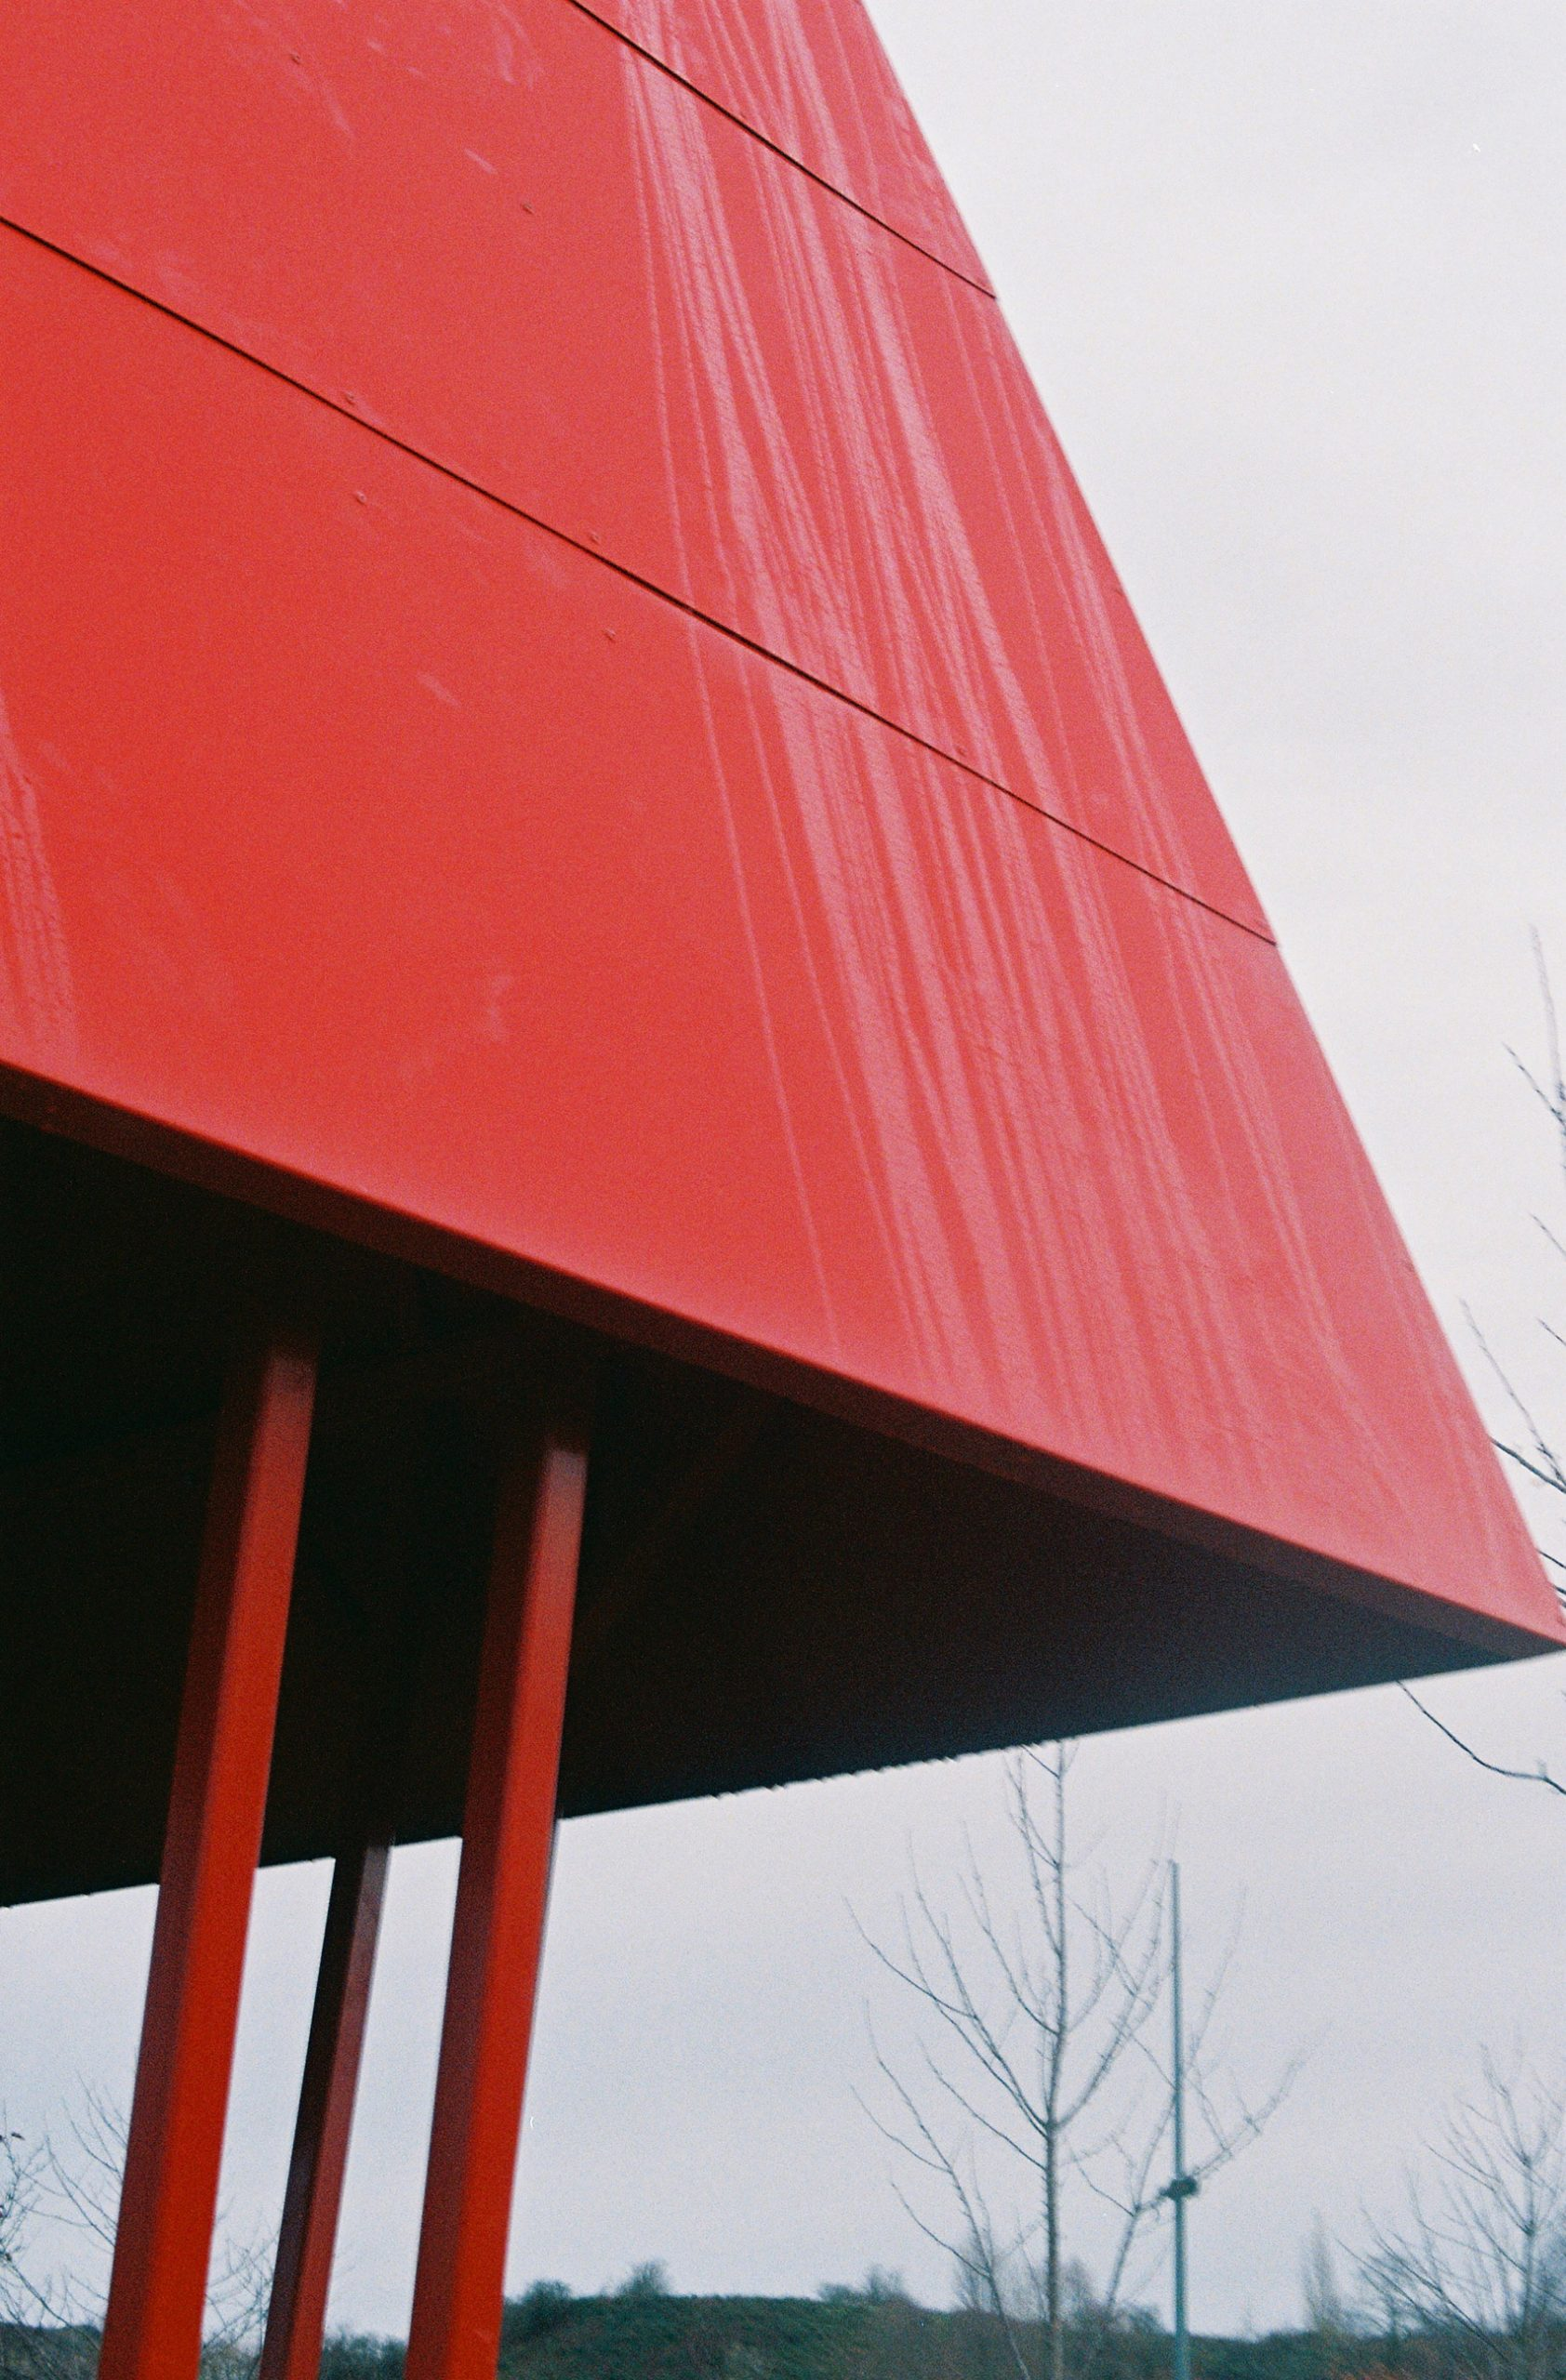 A red steel roof